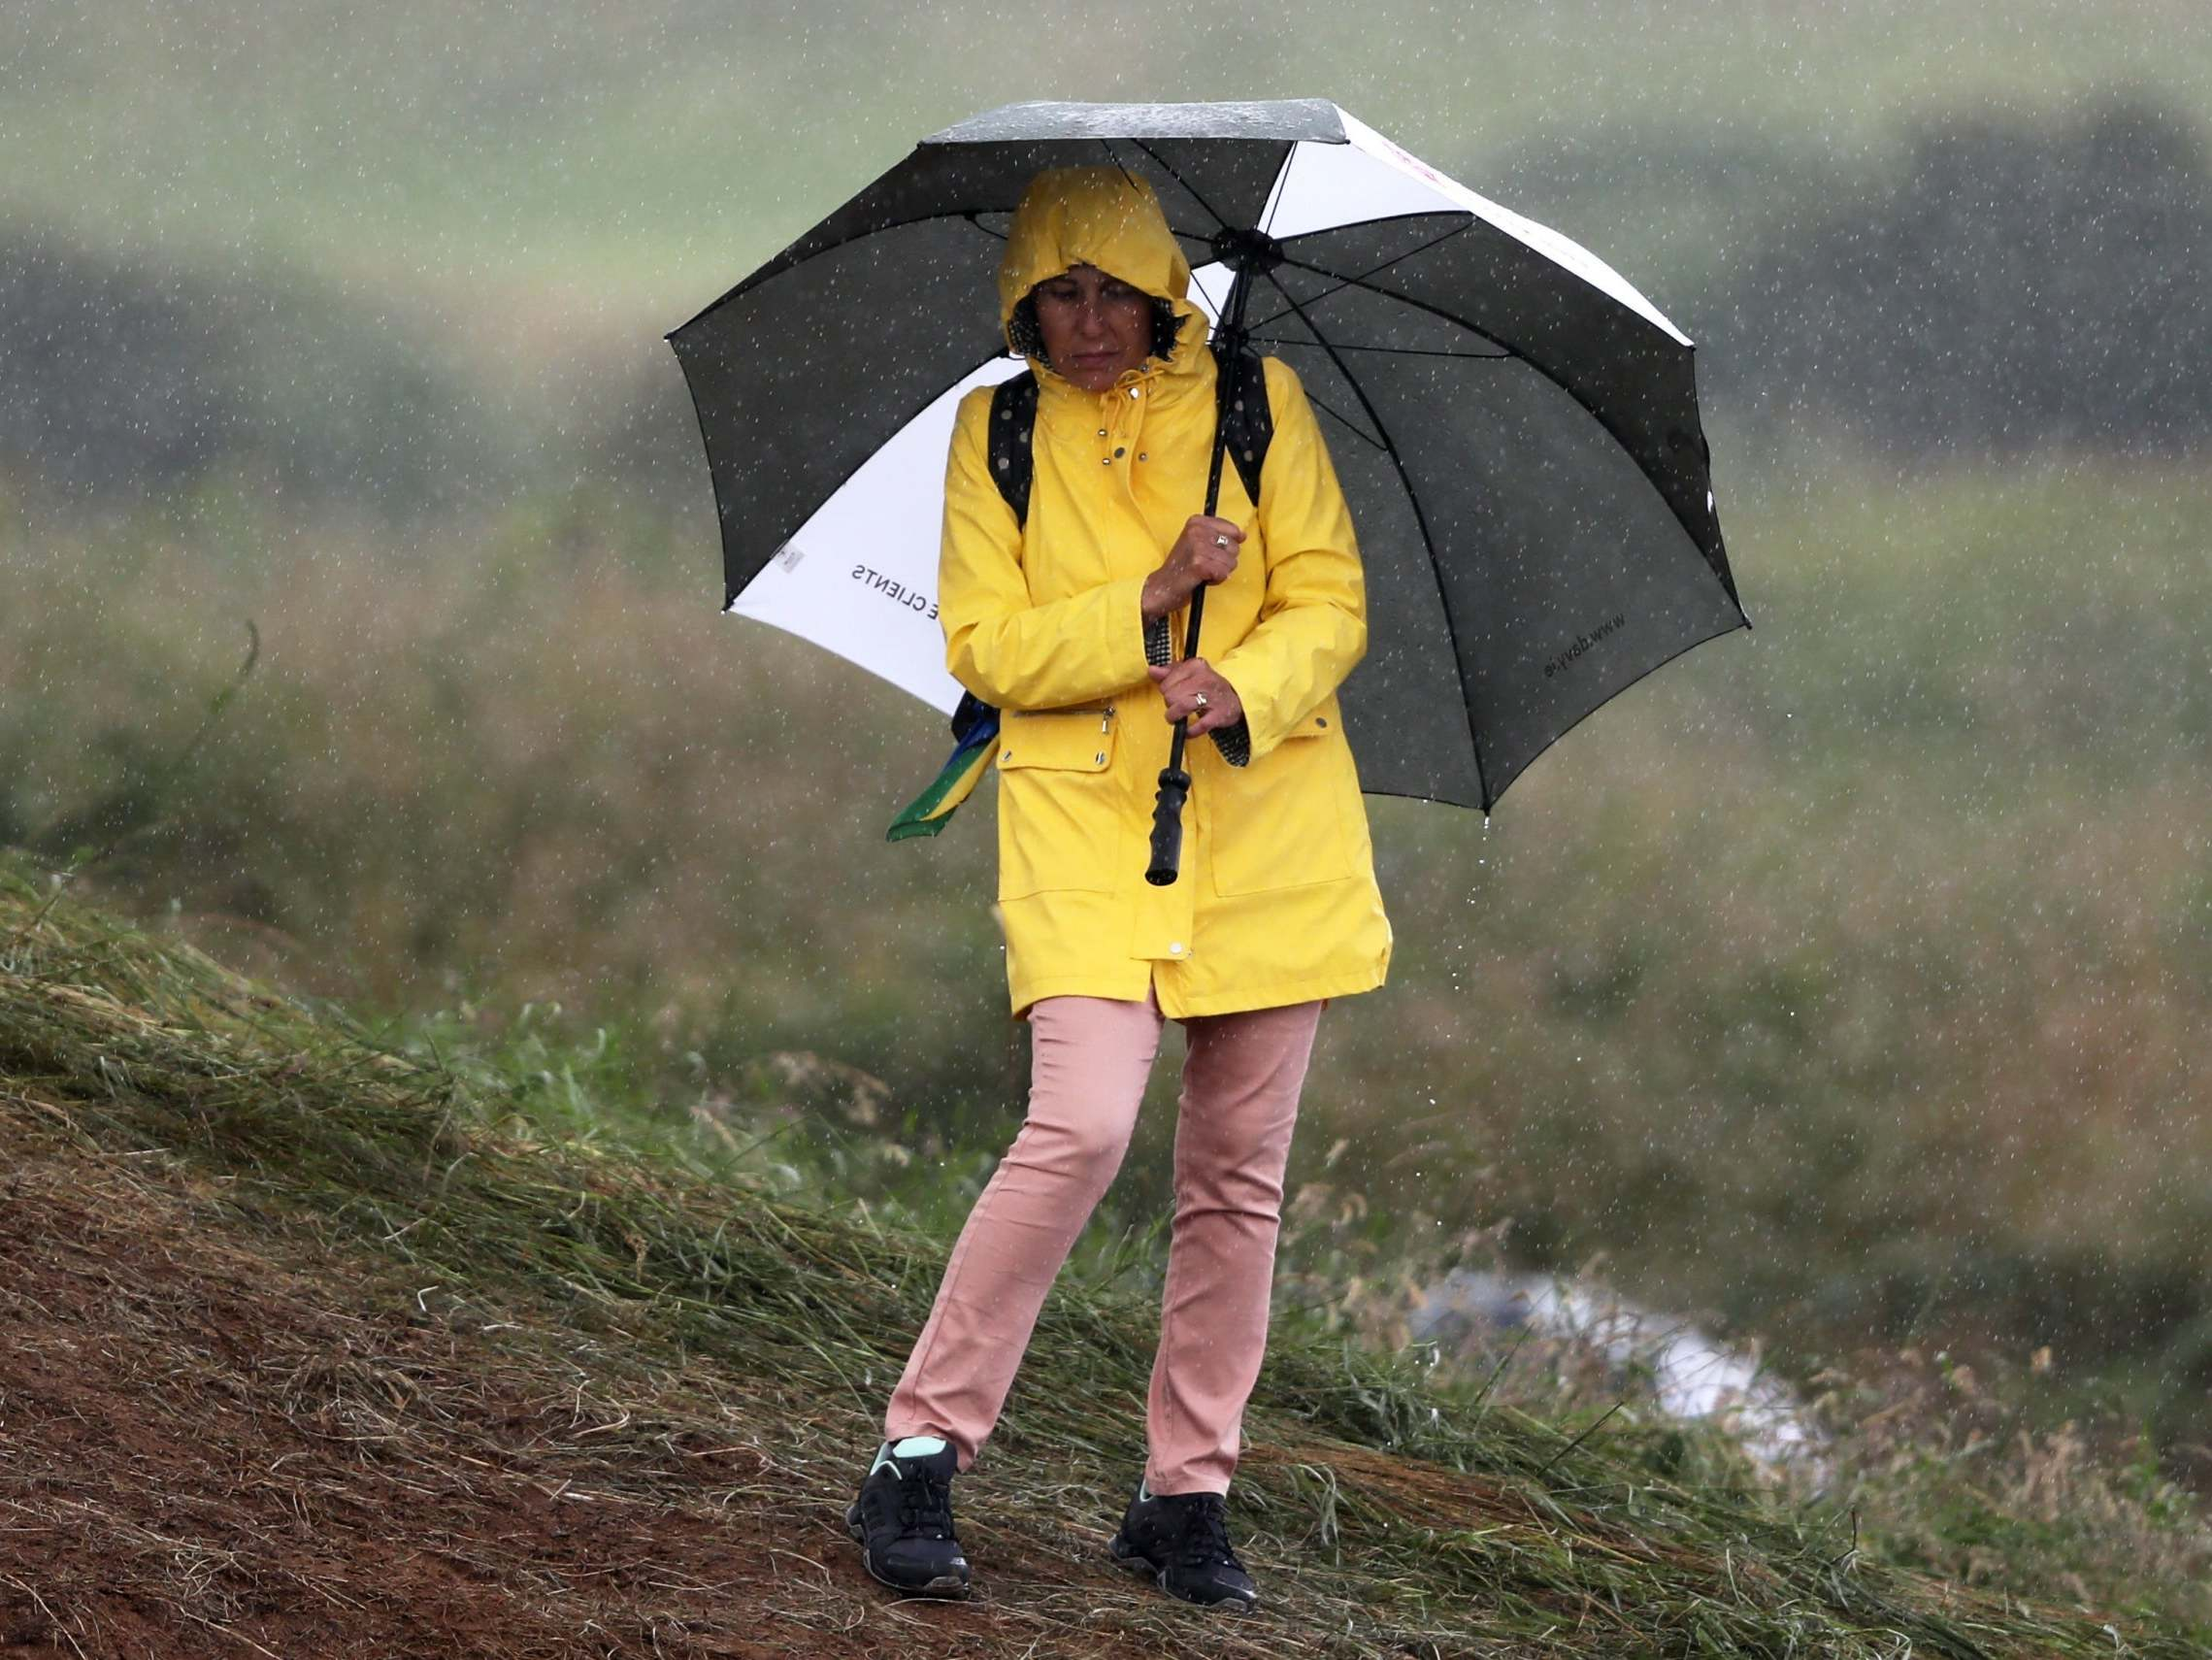 UK weather forecast: Thunderstorms and heavy rain set to sweep across country before scorching temperatures return